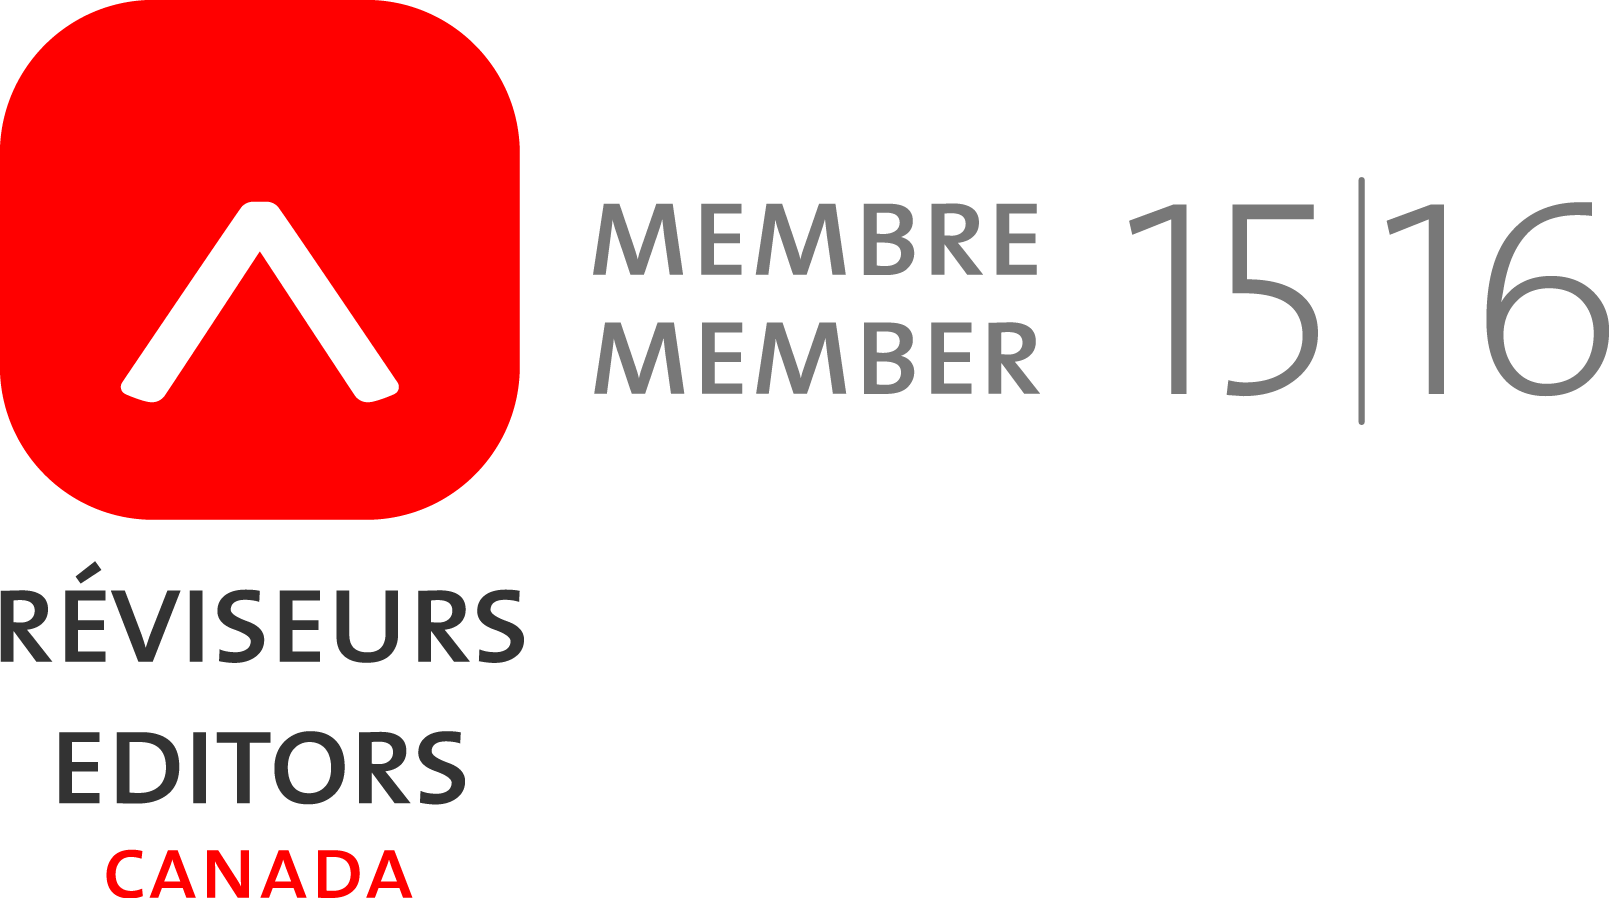 Member of Editors Canada 2015-2016